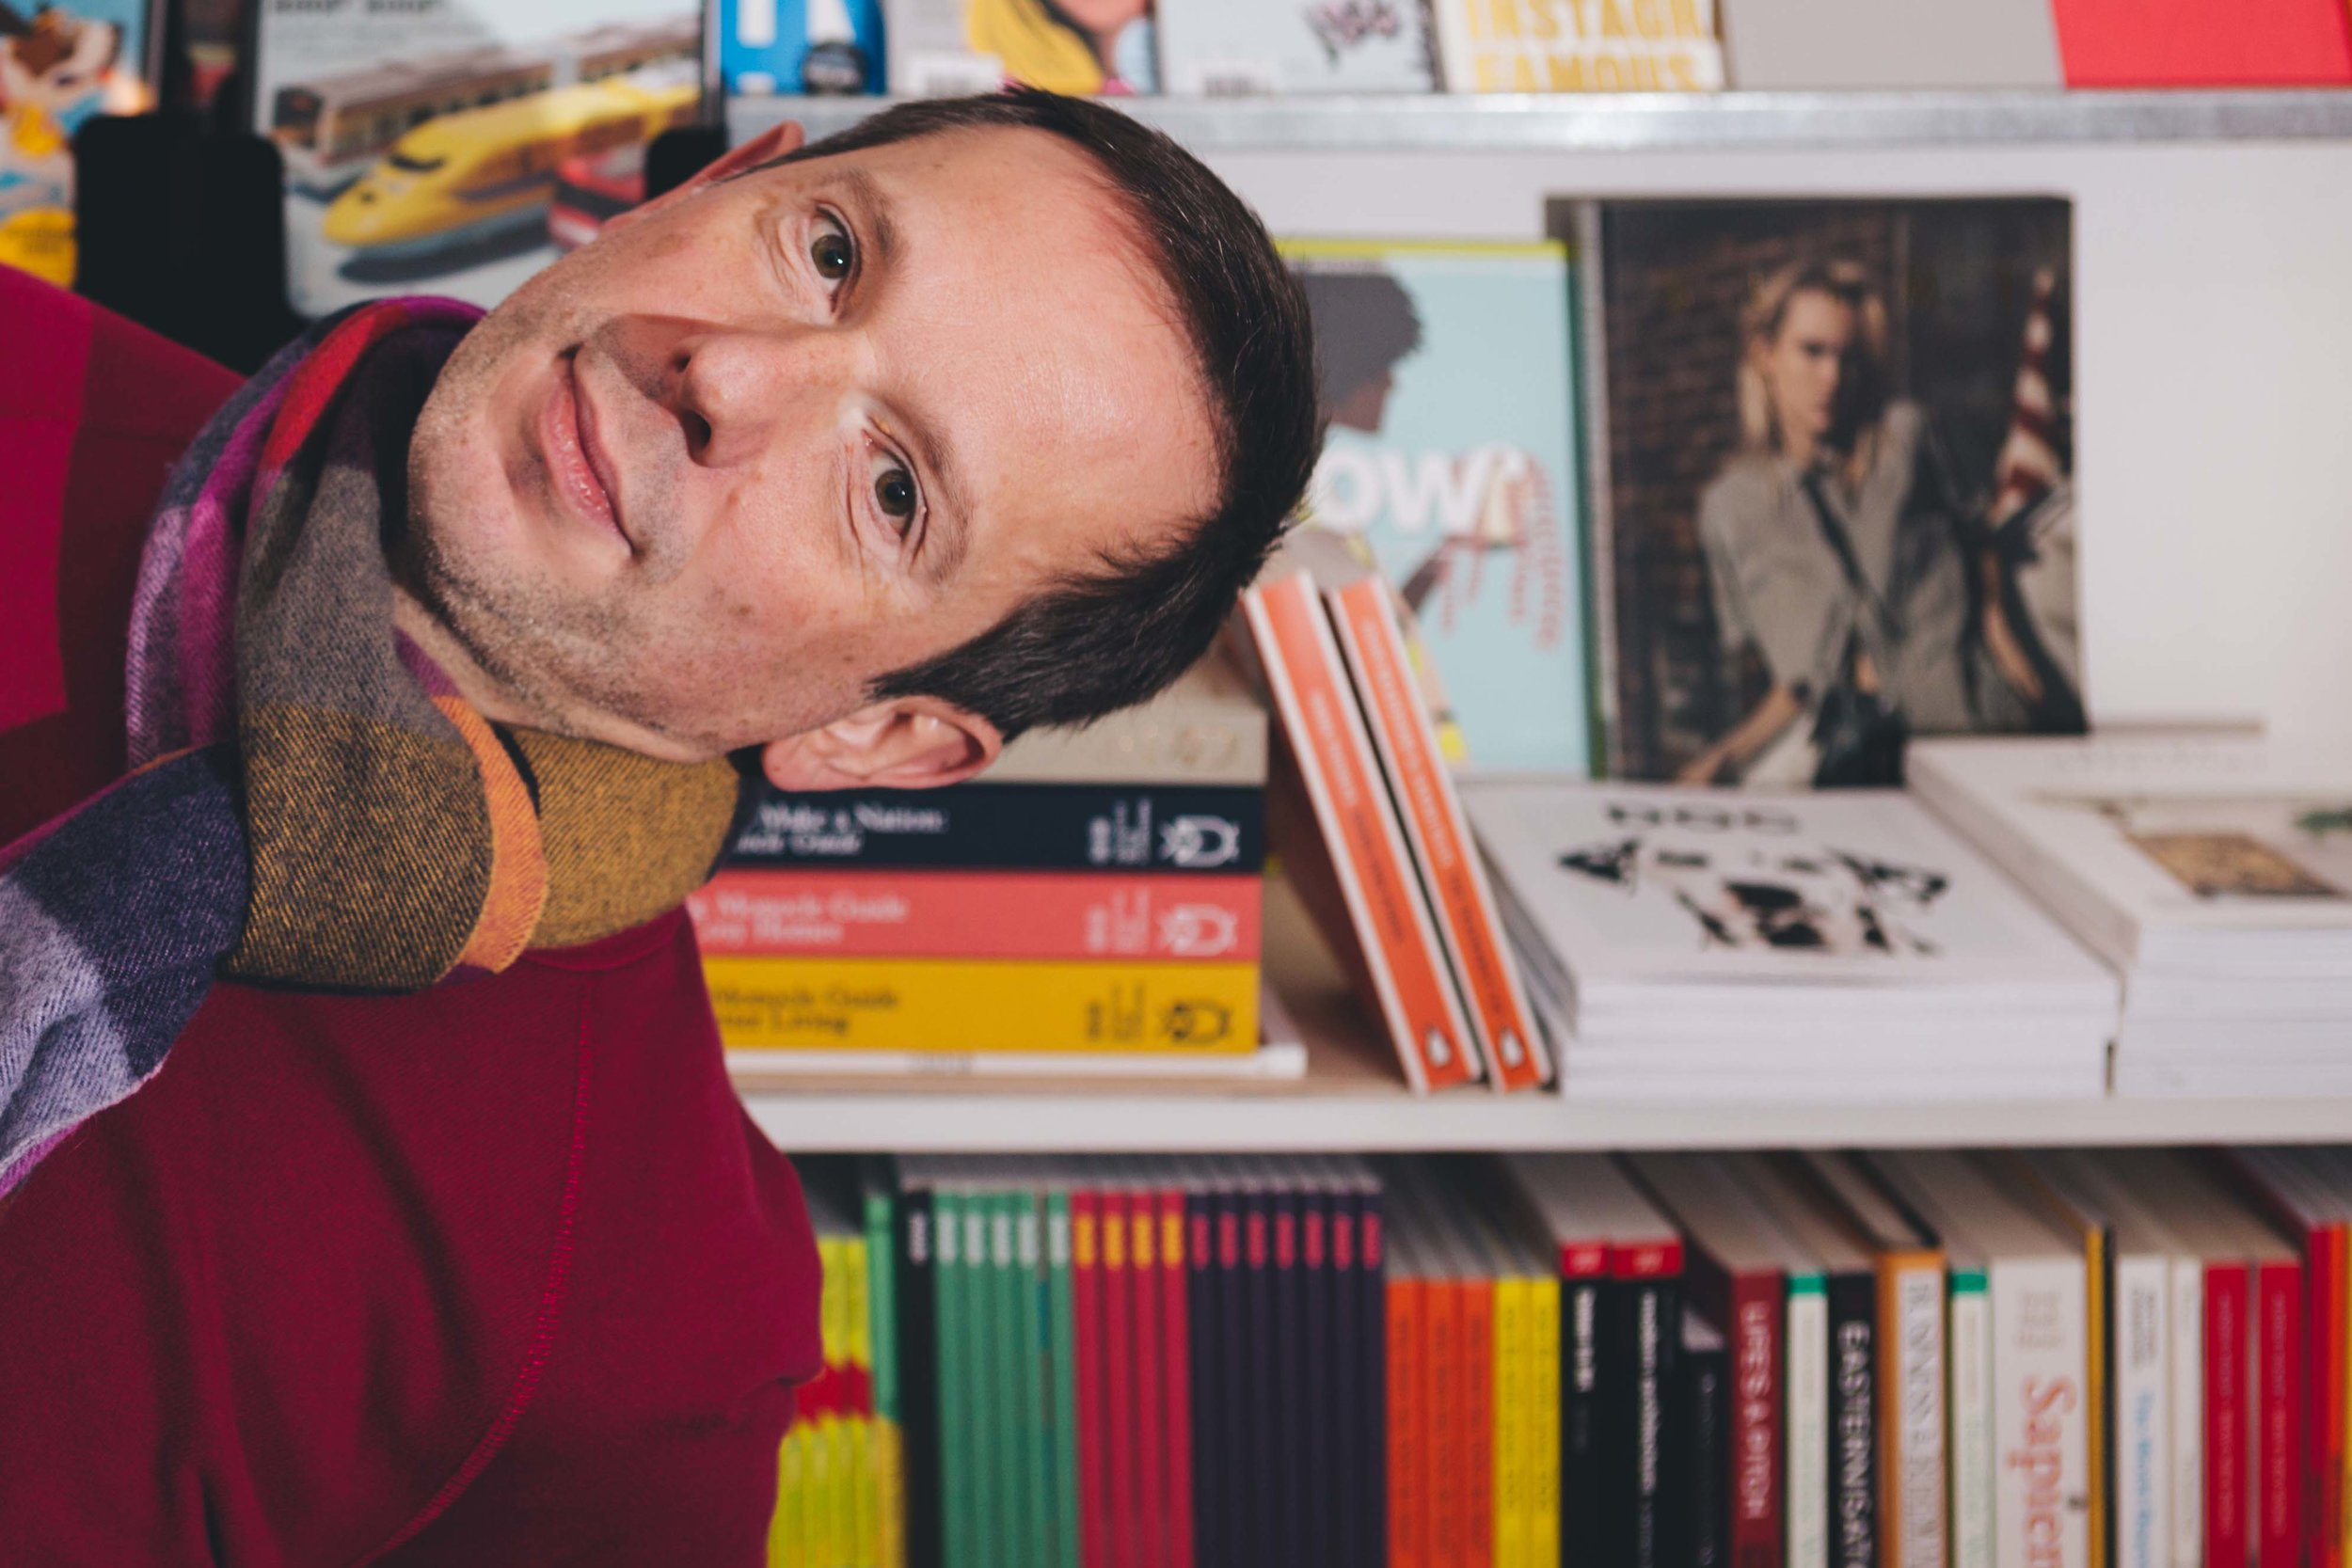 image with bookcases filled with independent magazines and books either side and to the back, with man in red jumper holding more books moving towards camera in a playful way